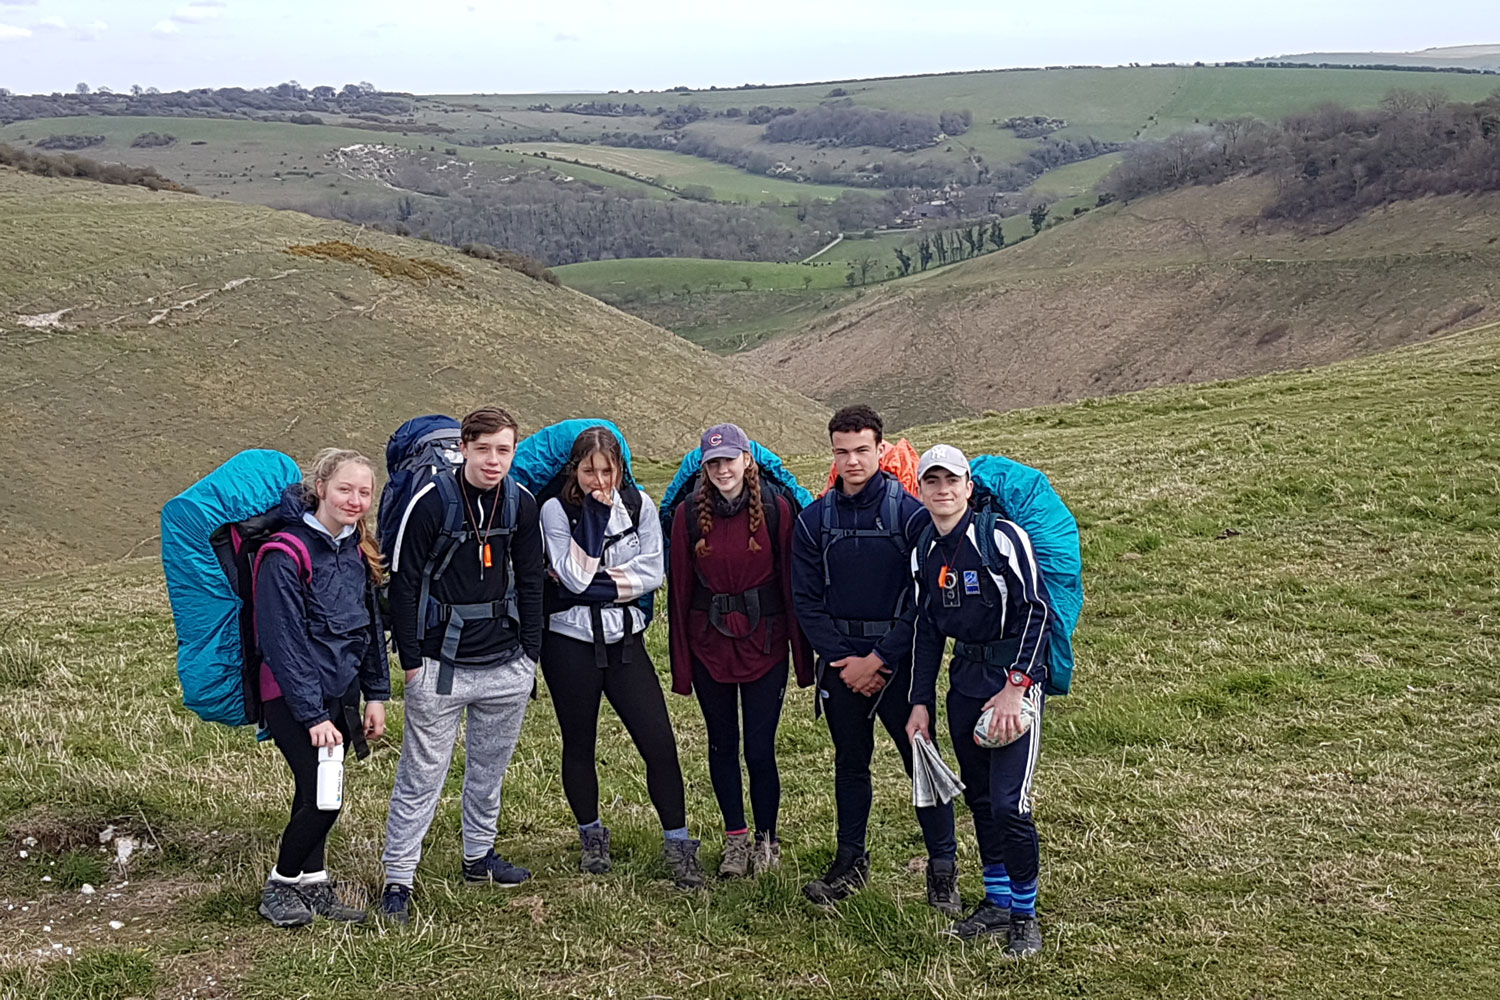 DofE Silver Expedition for Fifth Form Lancing College pupils